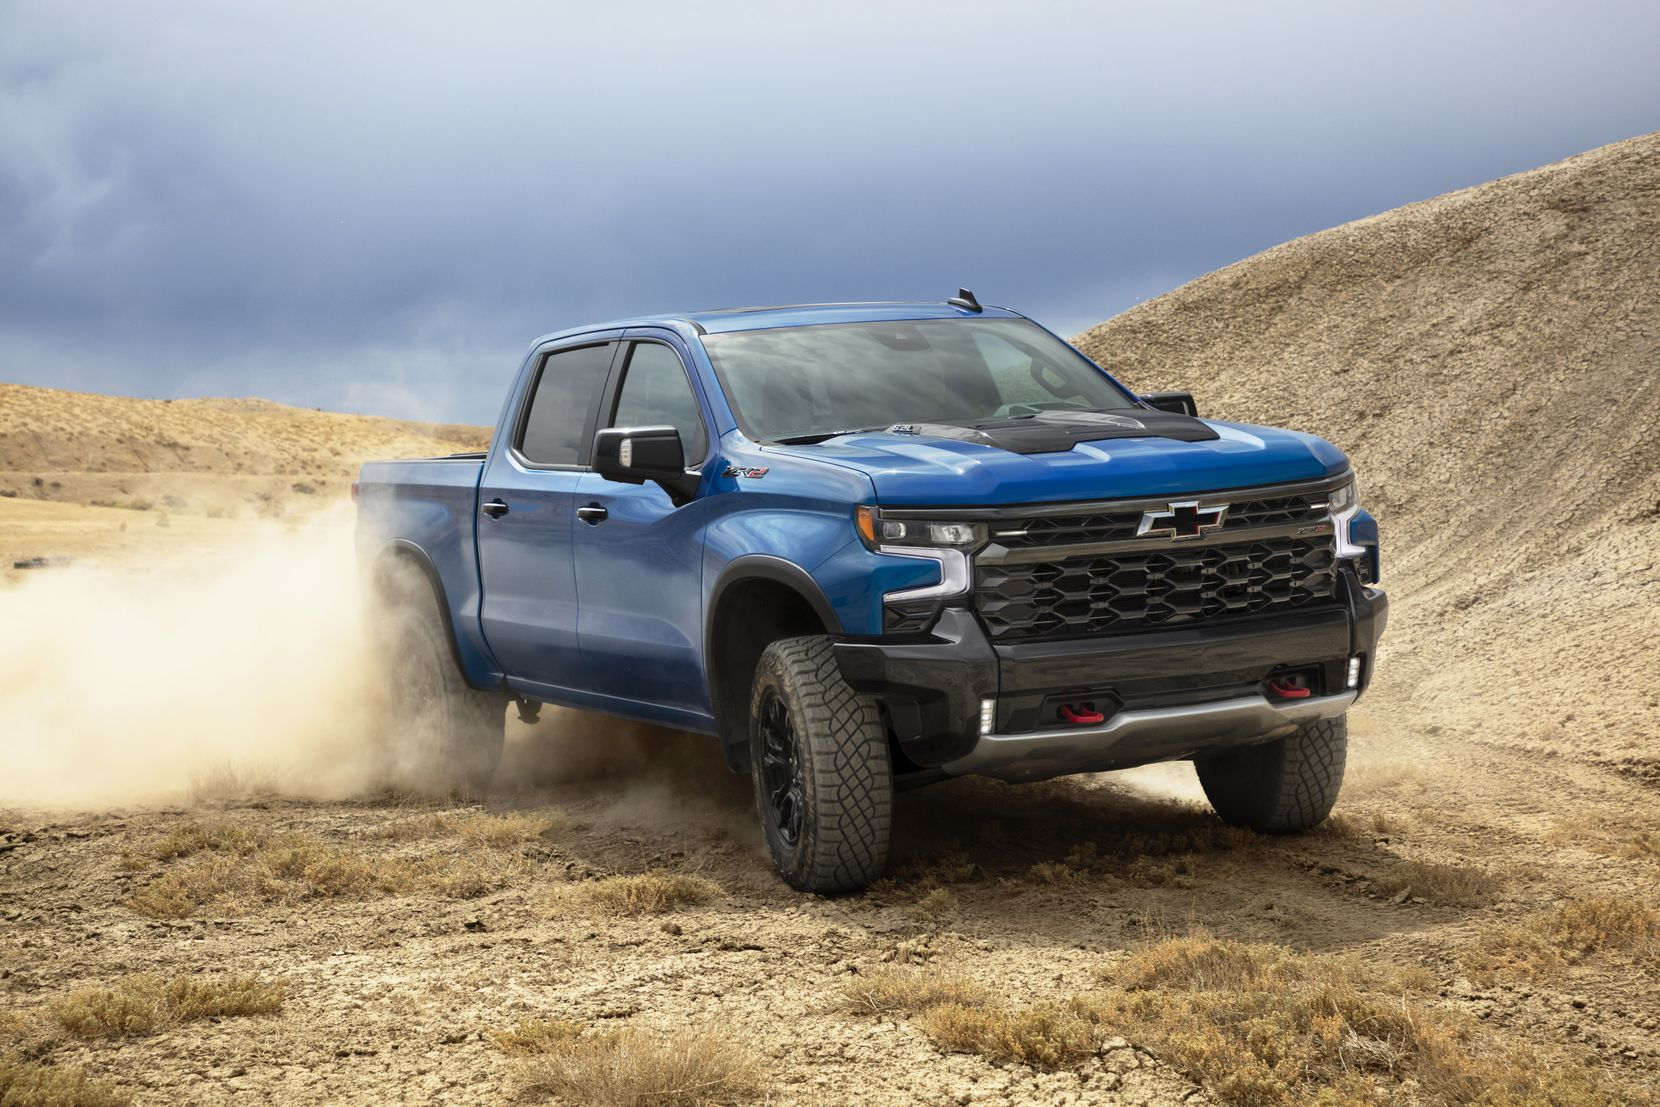 The flagship, off-road ZR2 is a showpiece for Chevrolet performance.